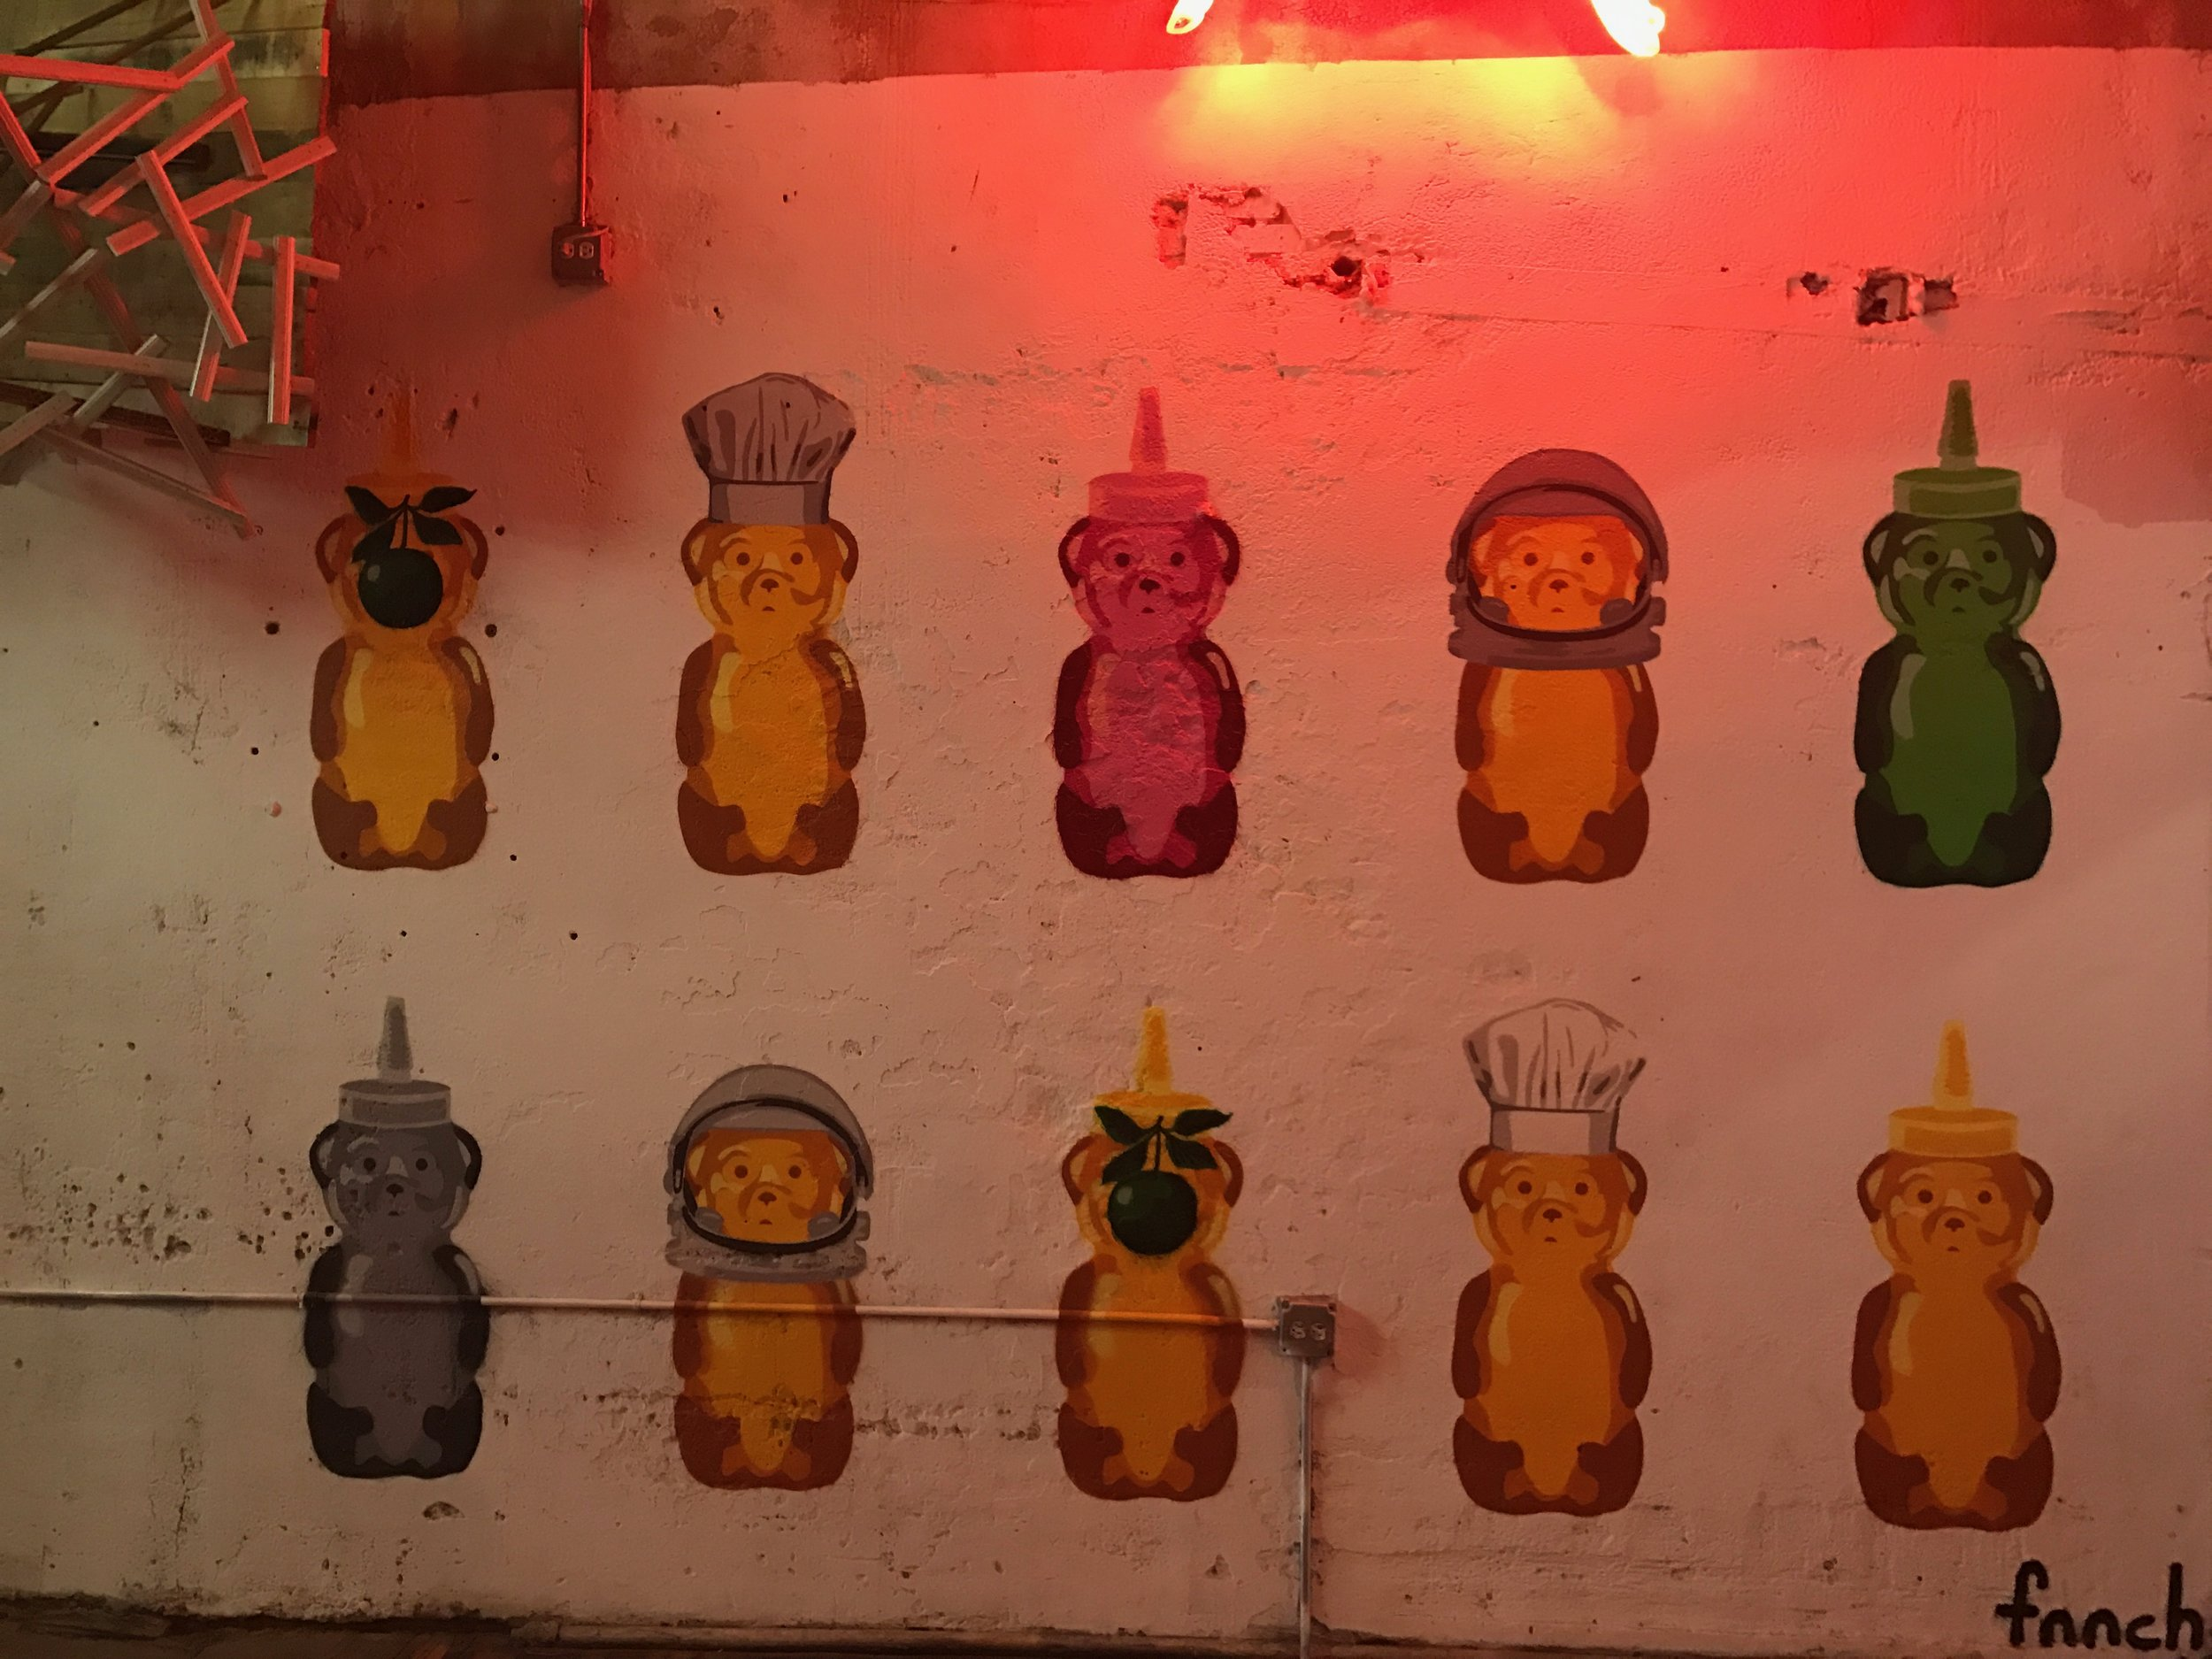 Honeybears by fnnch inside the building